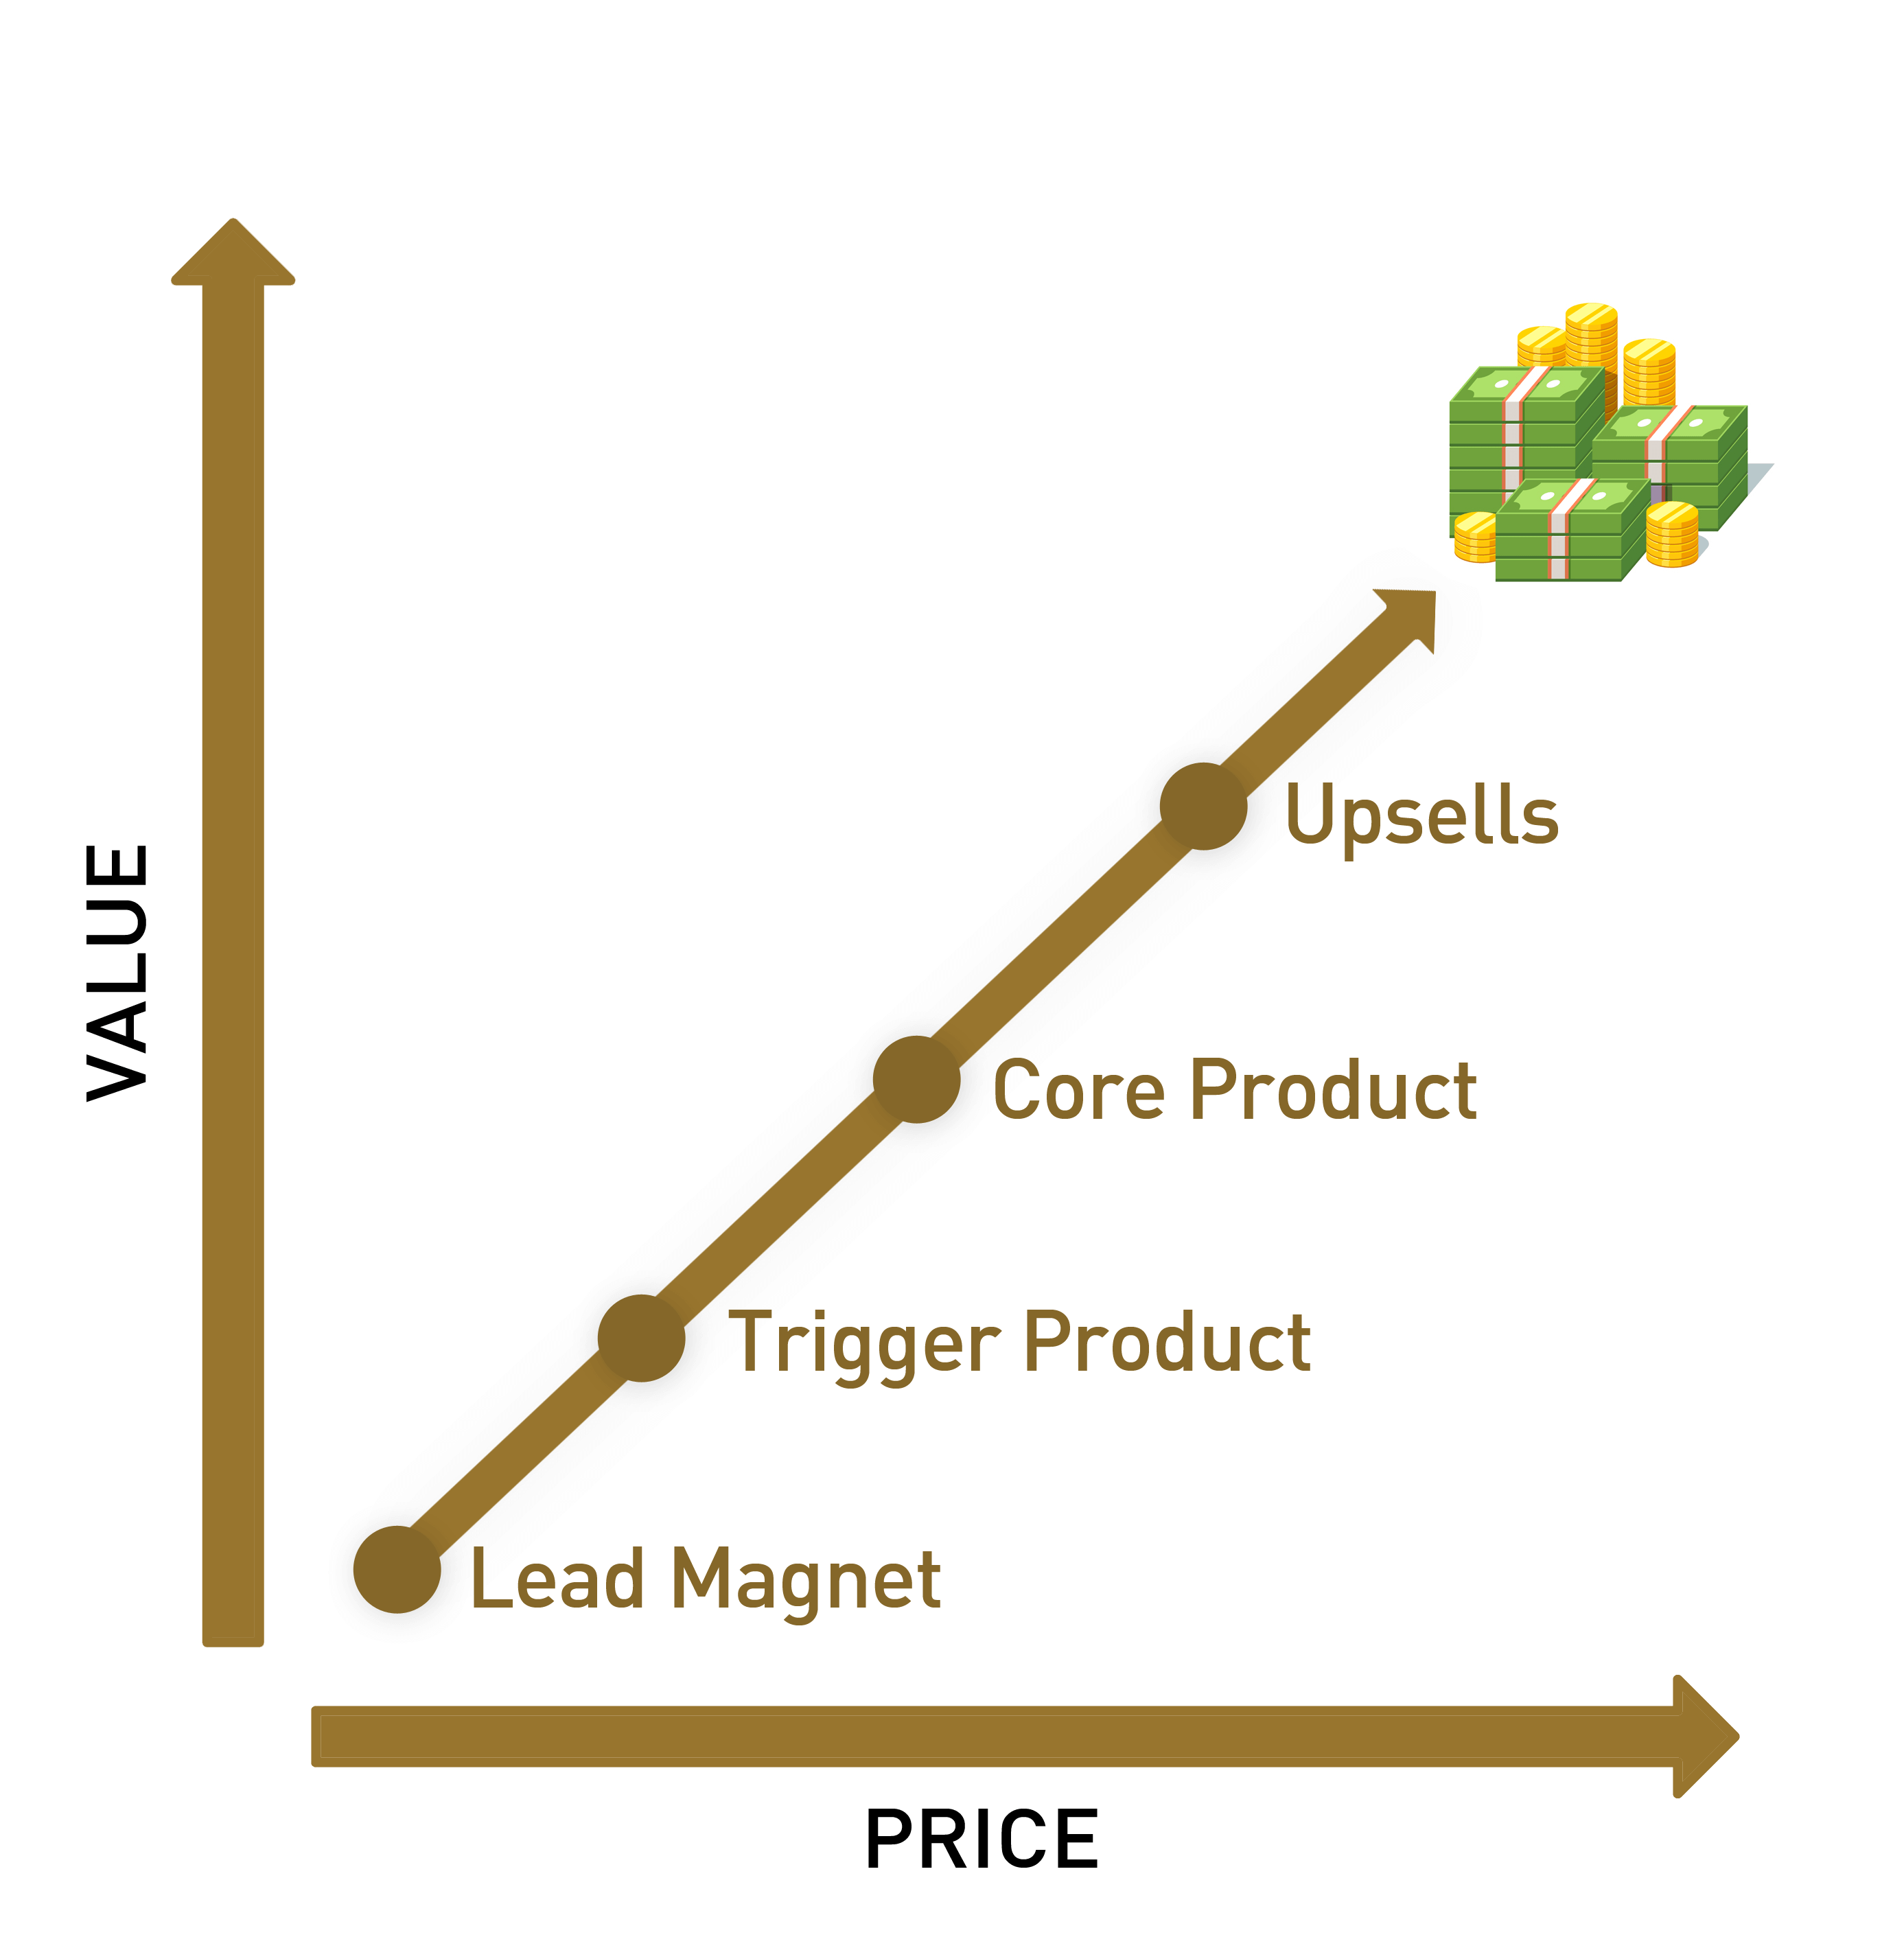 Value Price Matrix